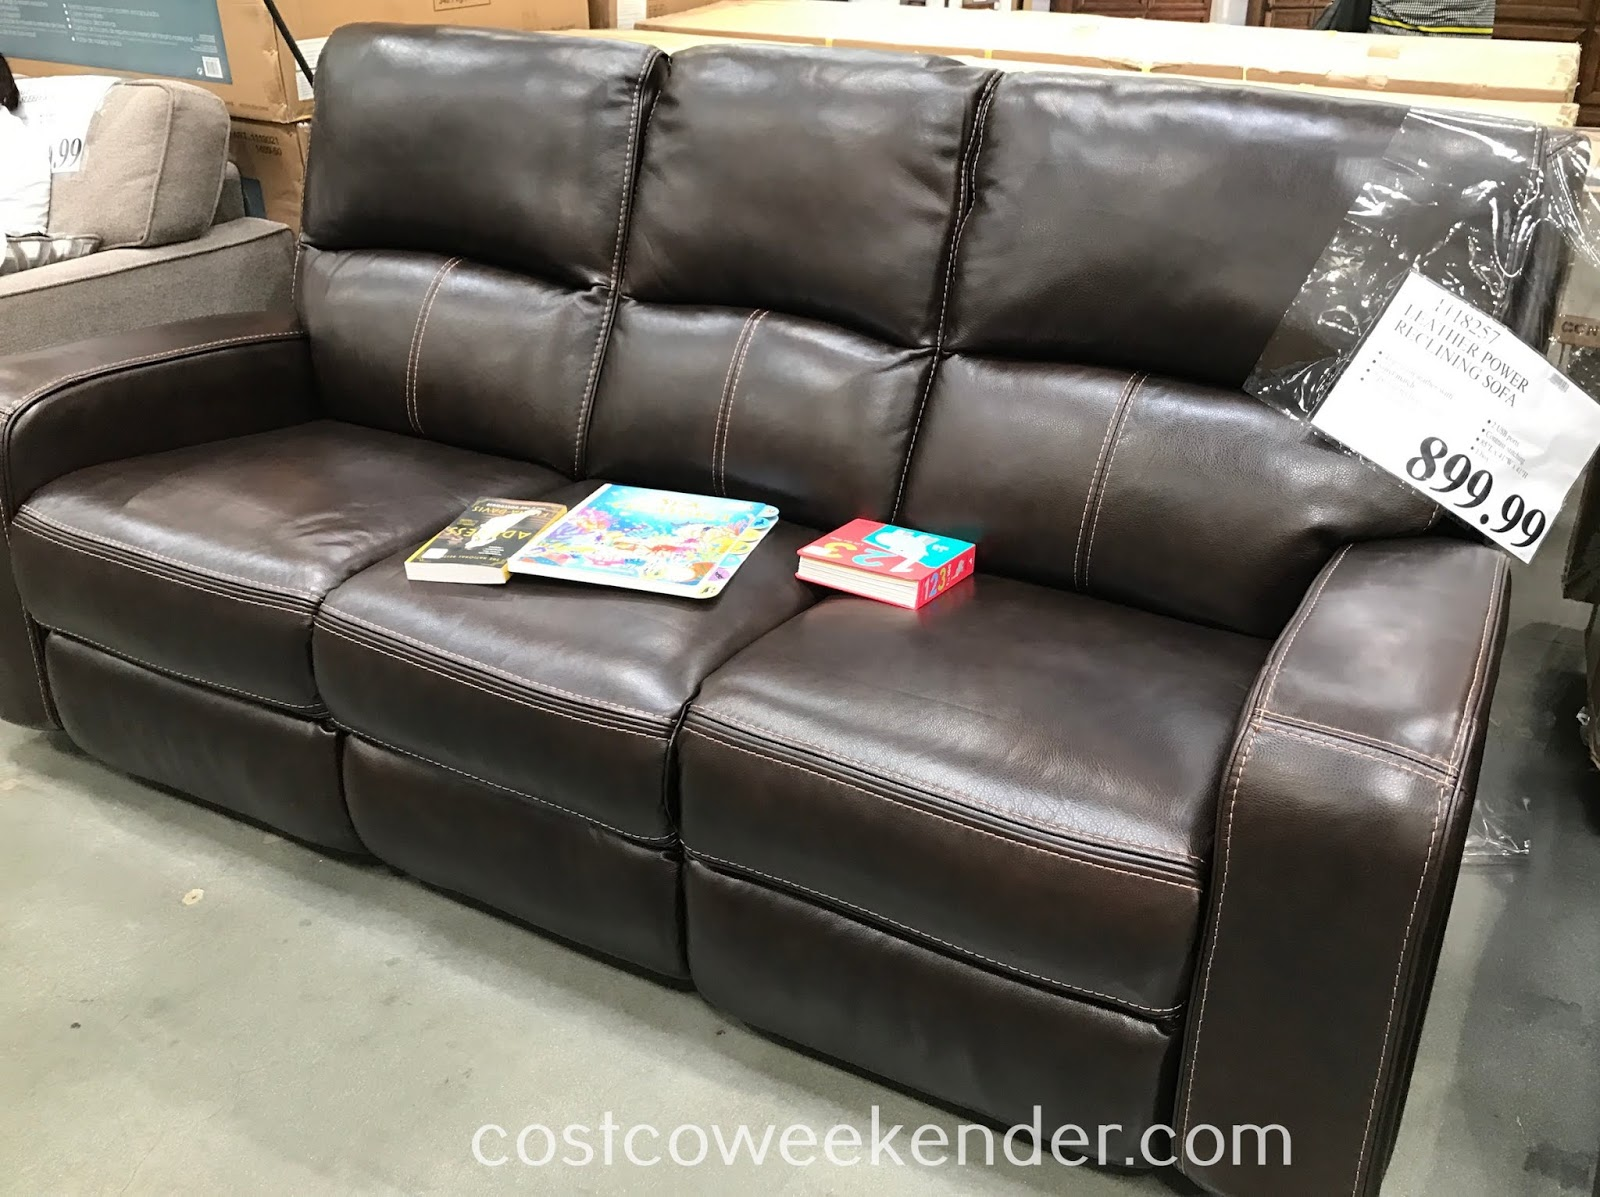 Sofa At Costco Uk U Shaped Sectional With Recliners Power Recliner Leather Gradschoolfairs